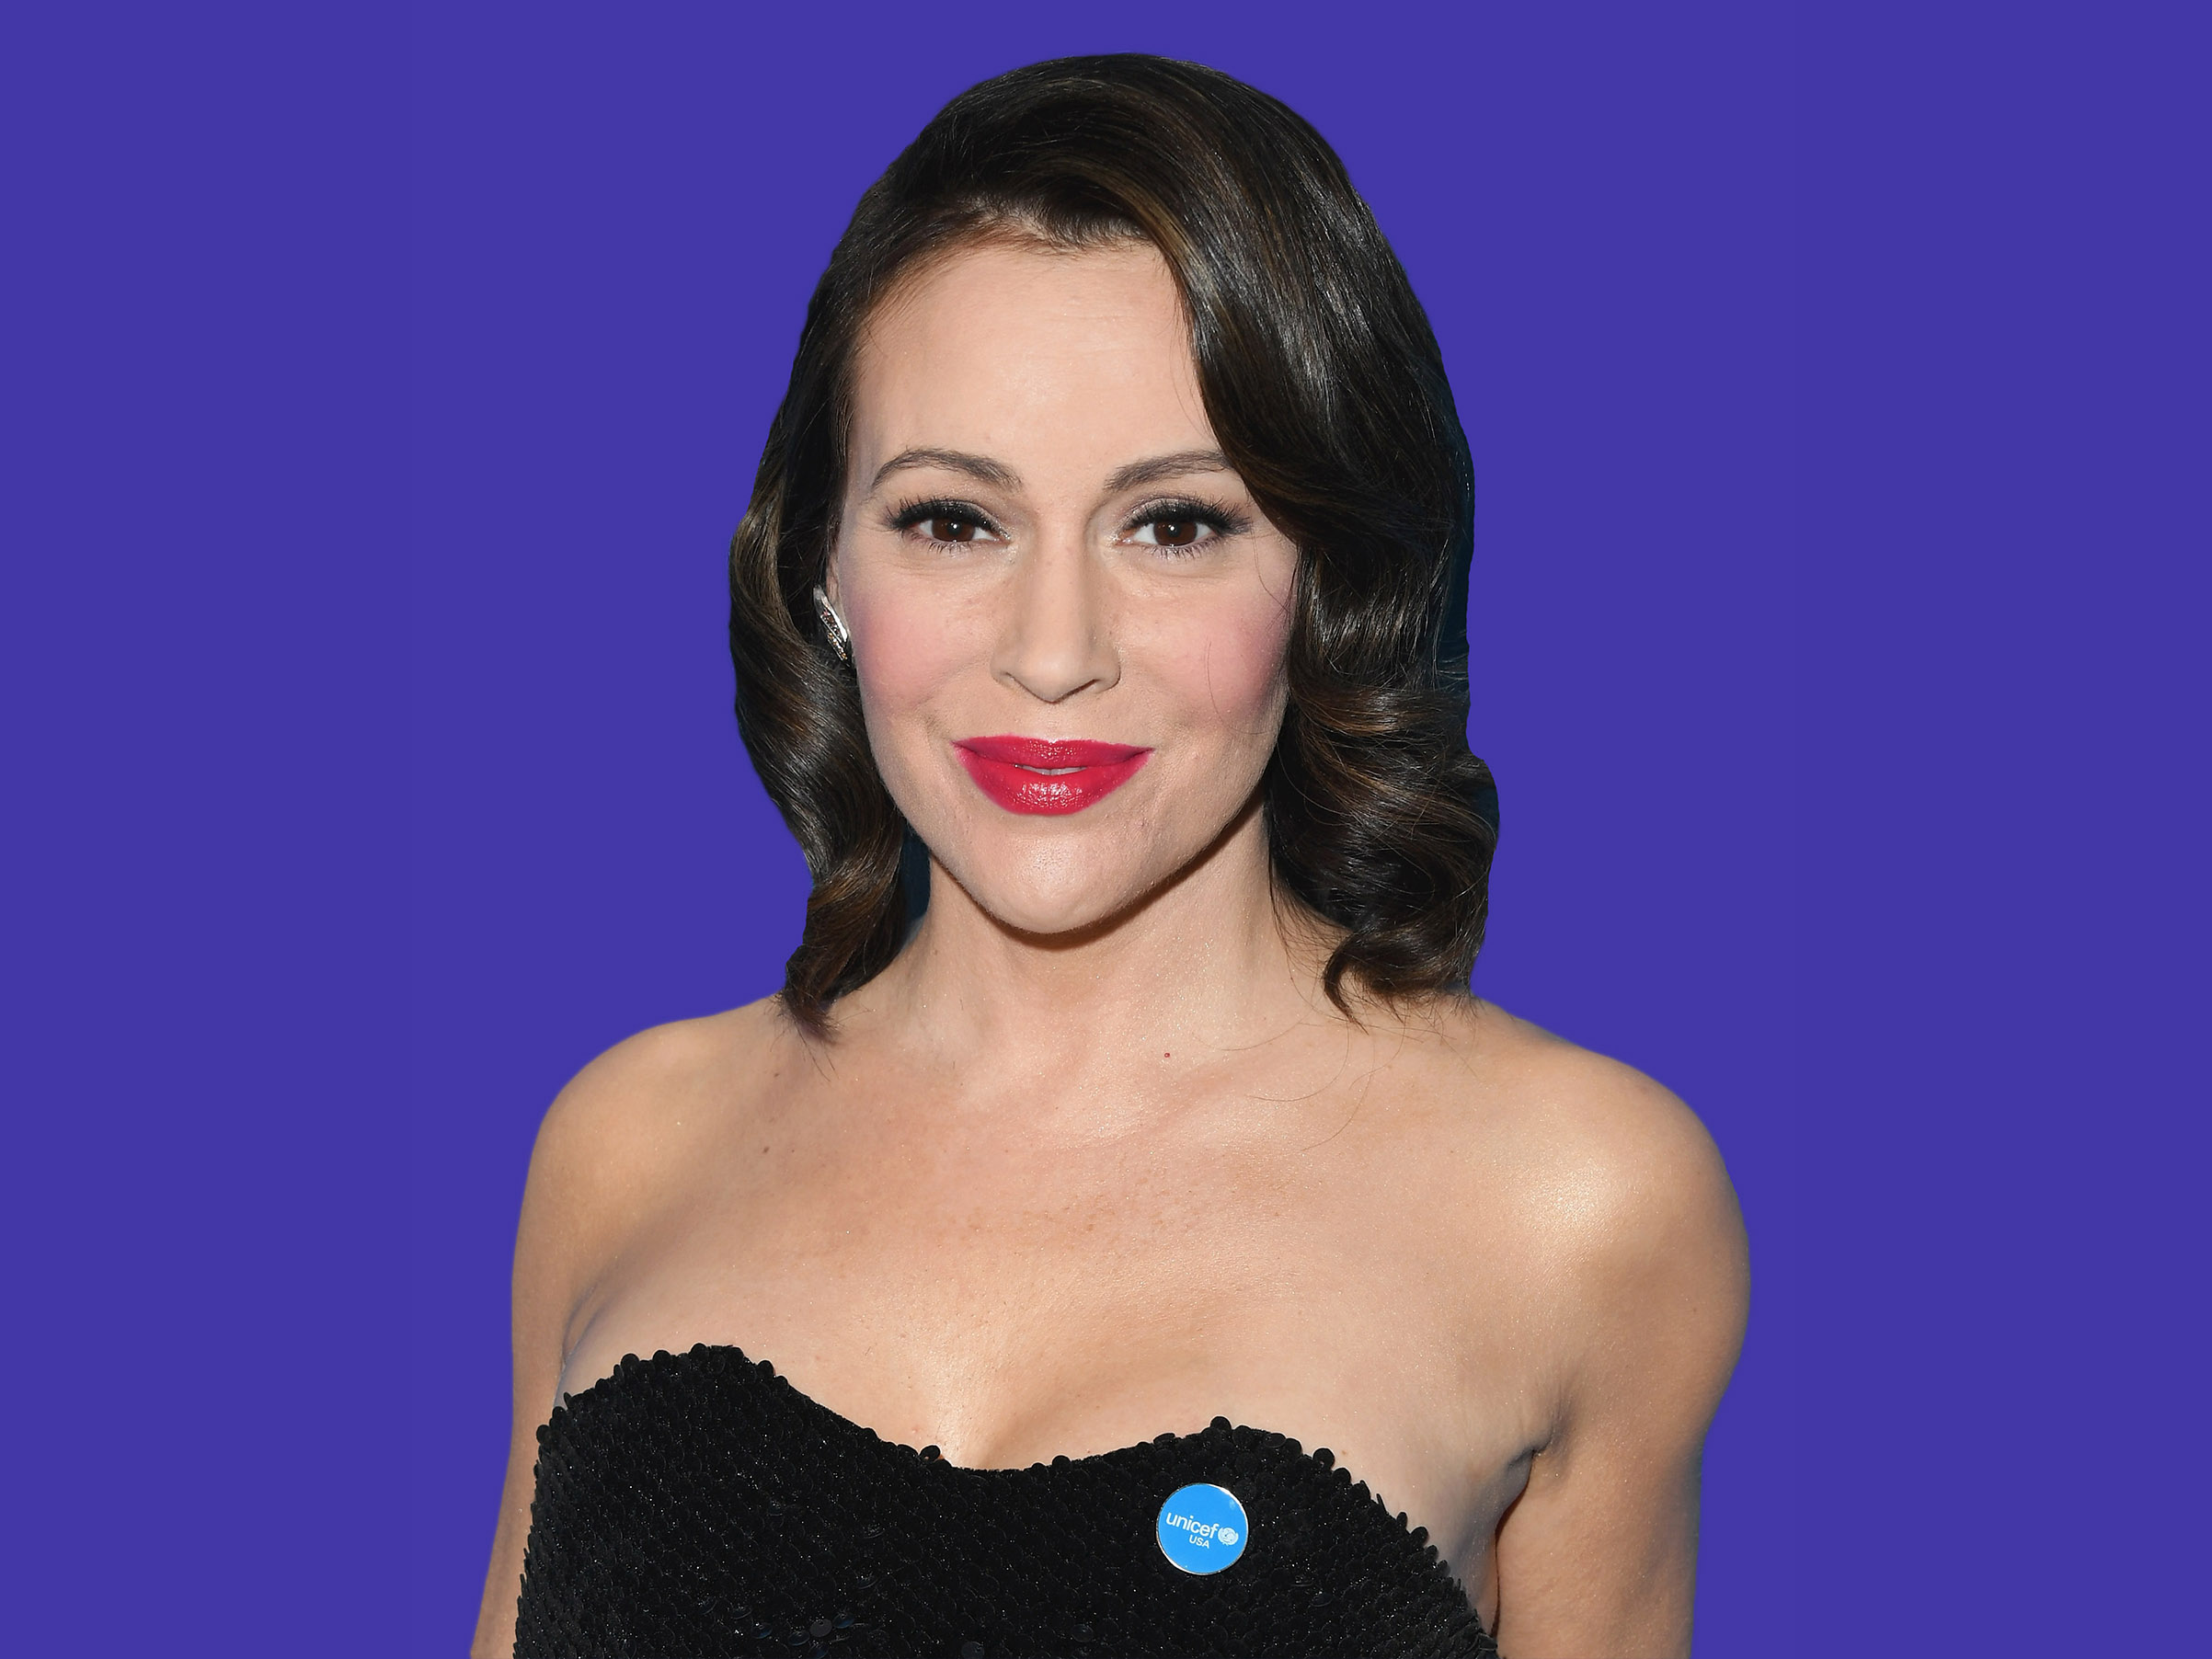 Alyssa Milano attends the 7th Biennial UNICEF Ball at the Beverly Wilshire Four Seasons Hotel on April 14, 2018 in Beverly Hills, California